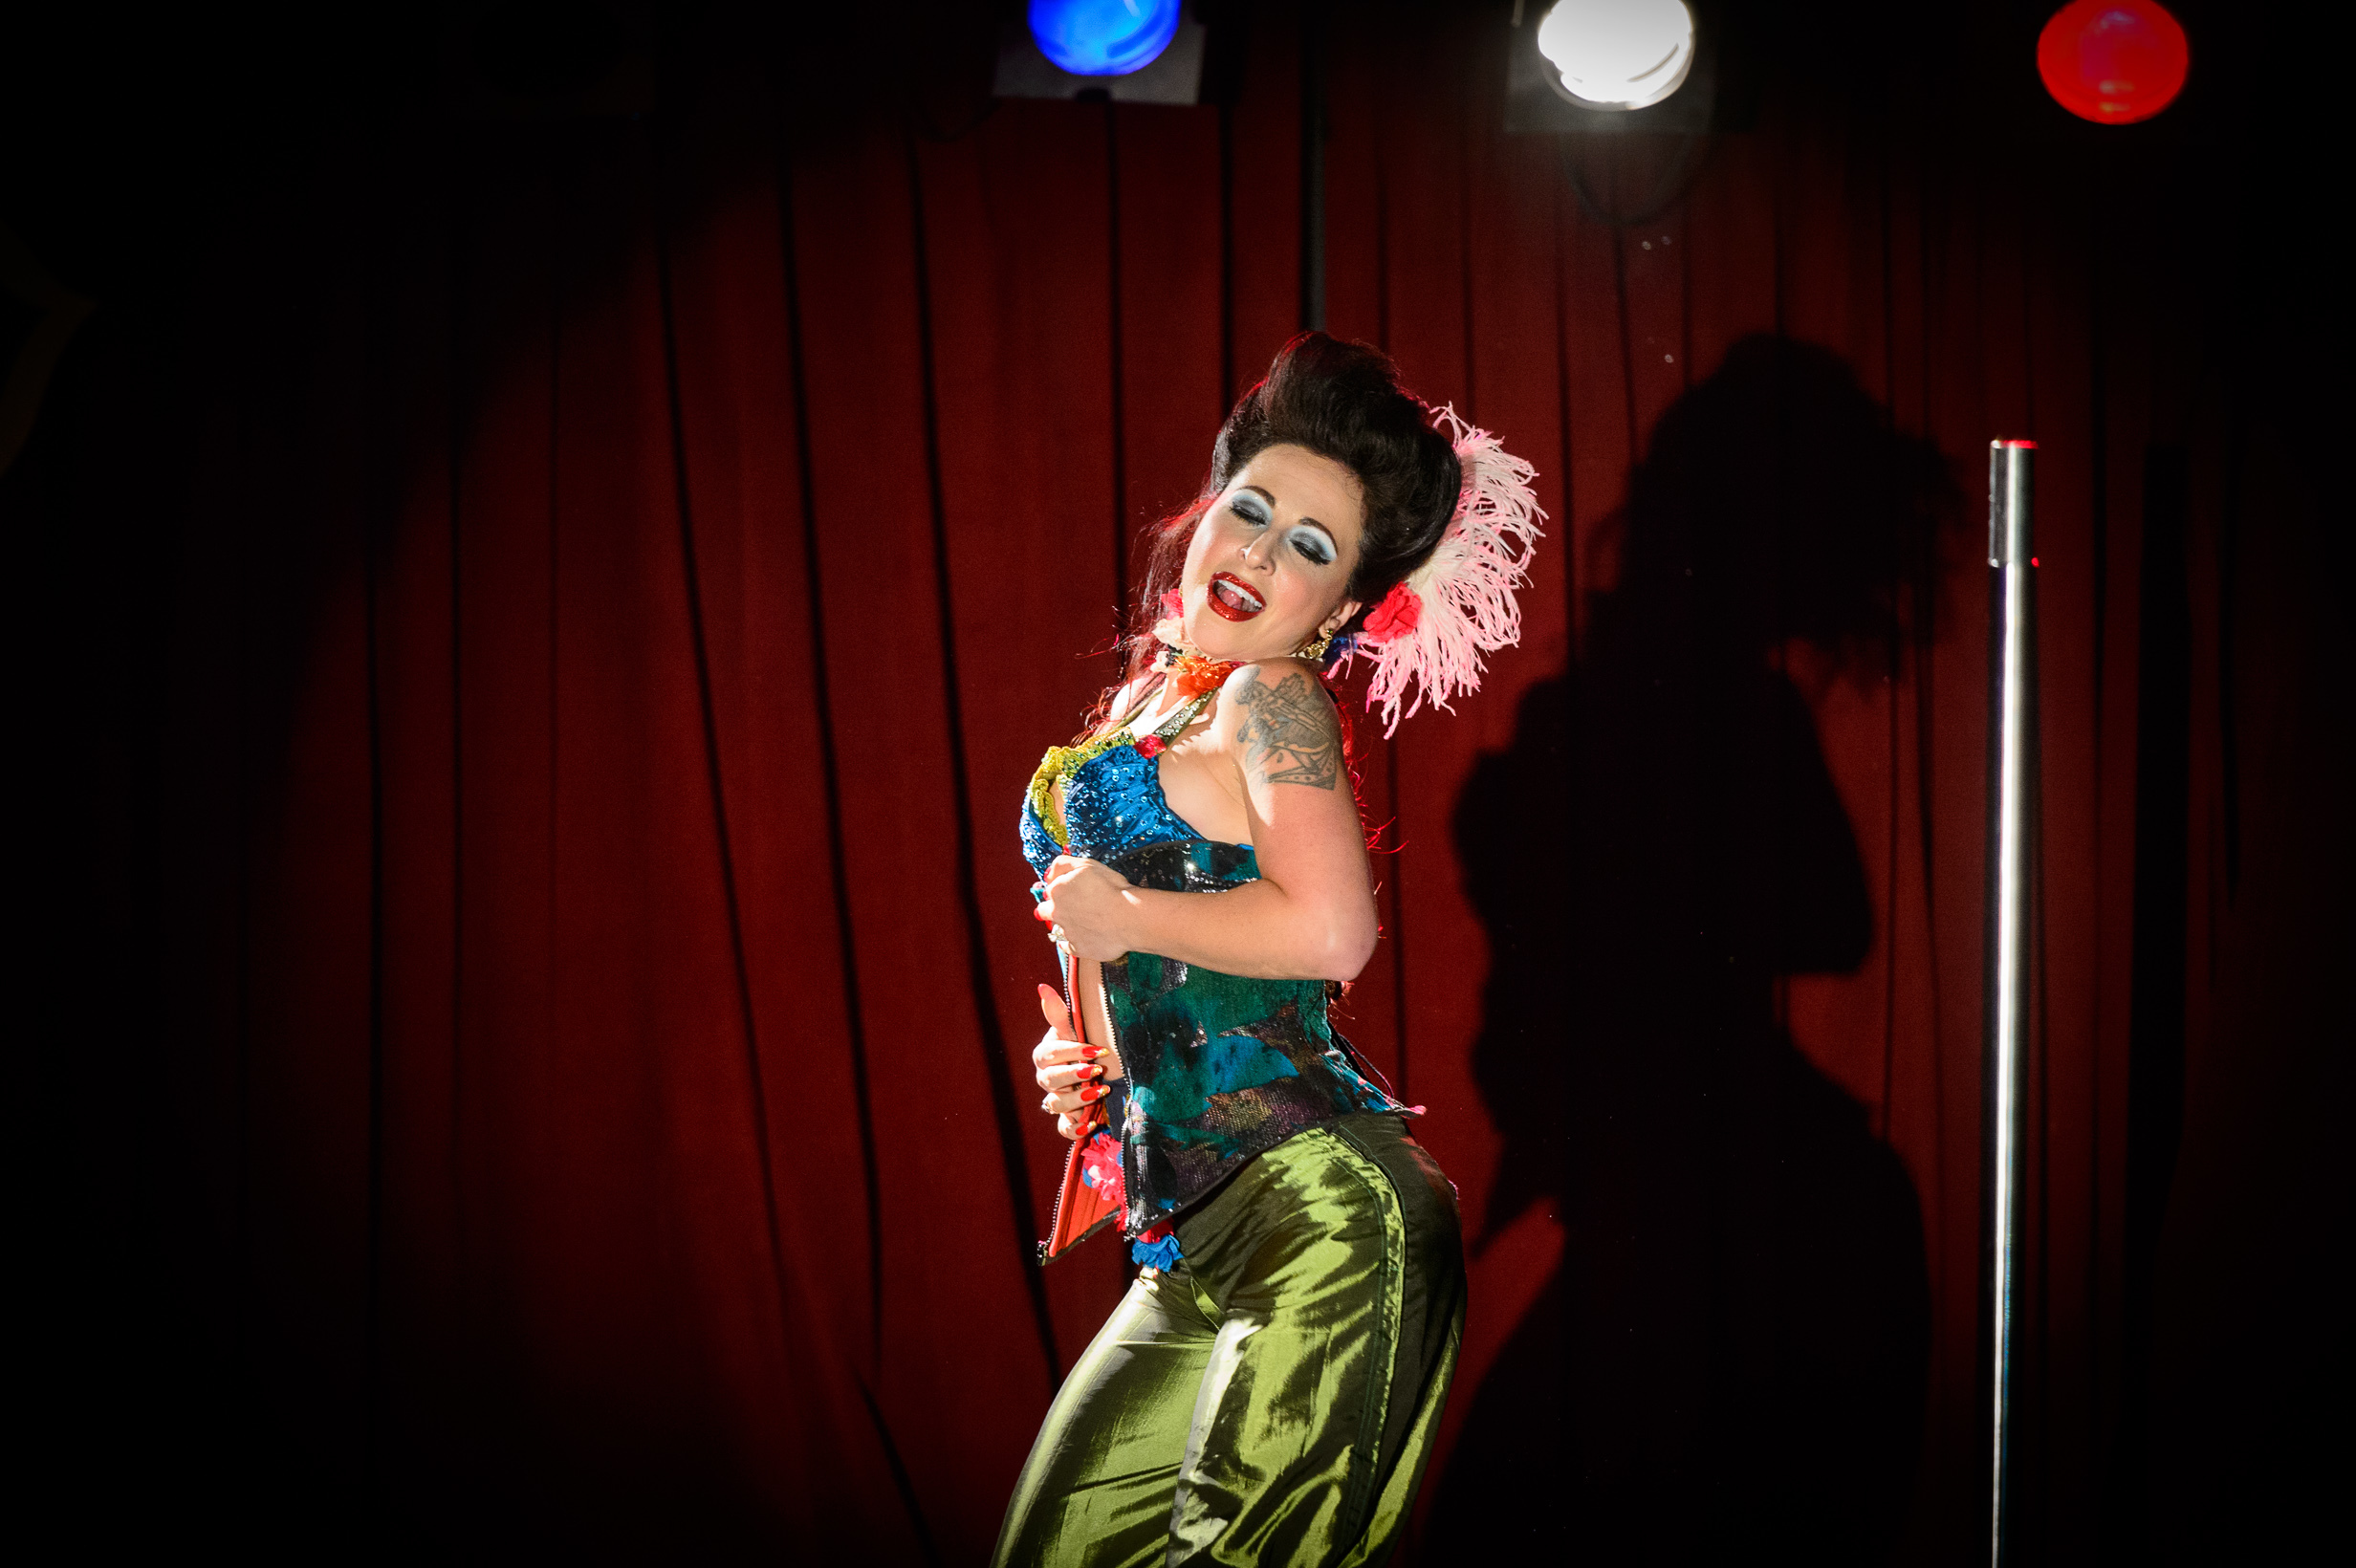 Angie Pontani (NYC) at the 11th Annual NY Burlesque Festival